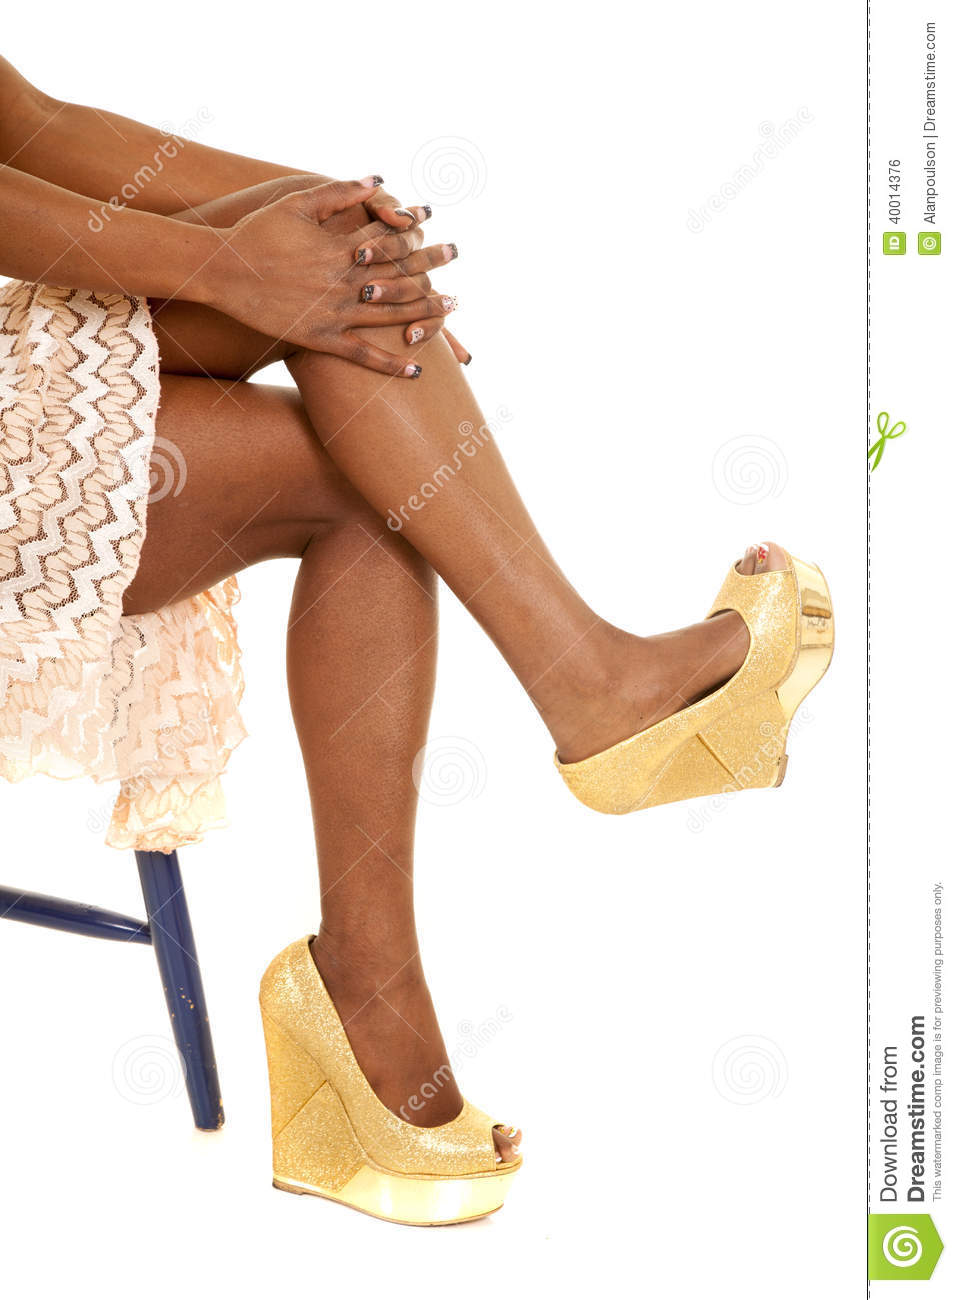 from Paxton african american legs in heels